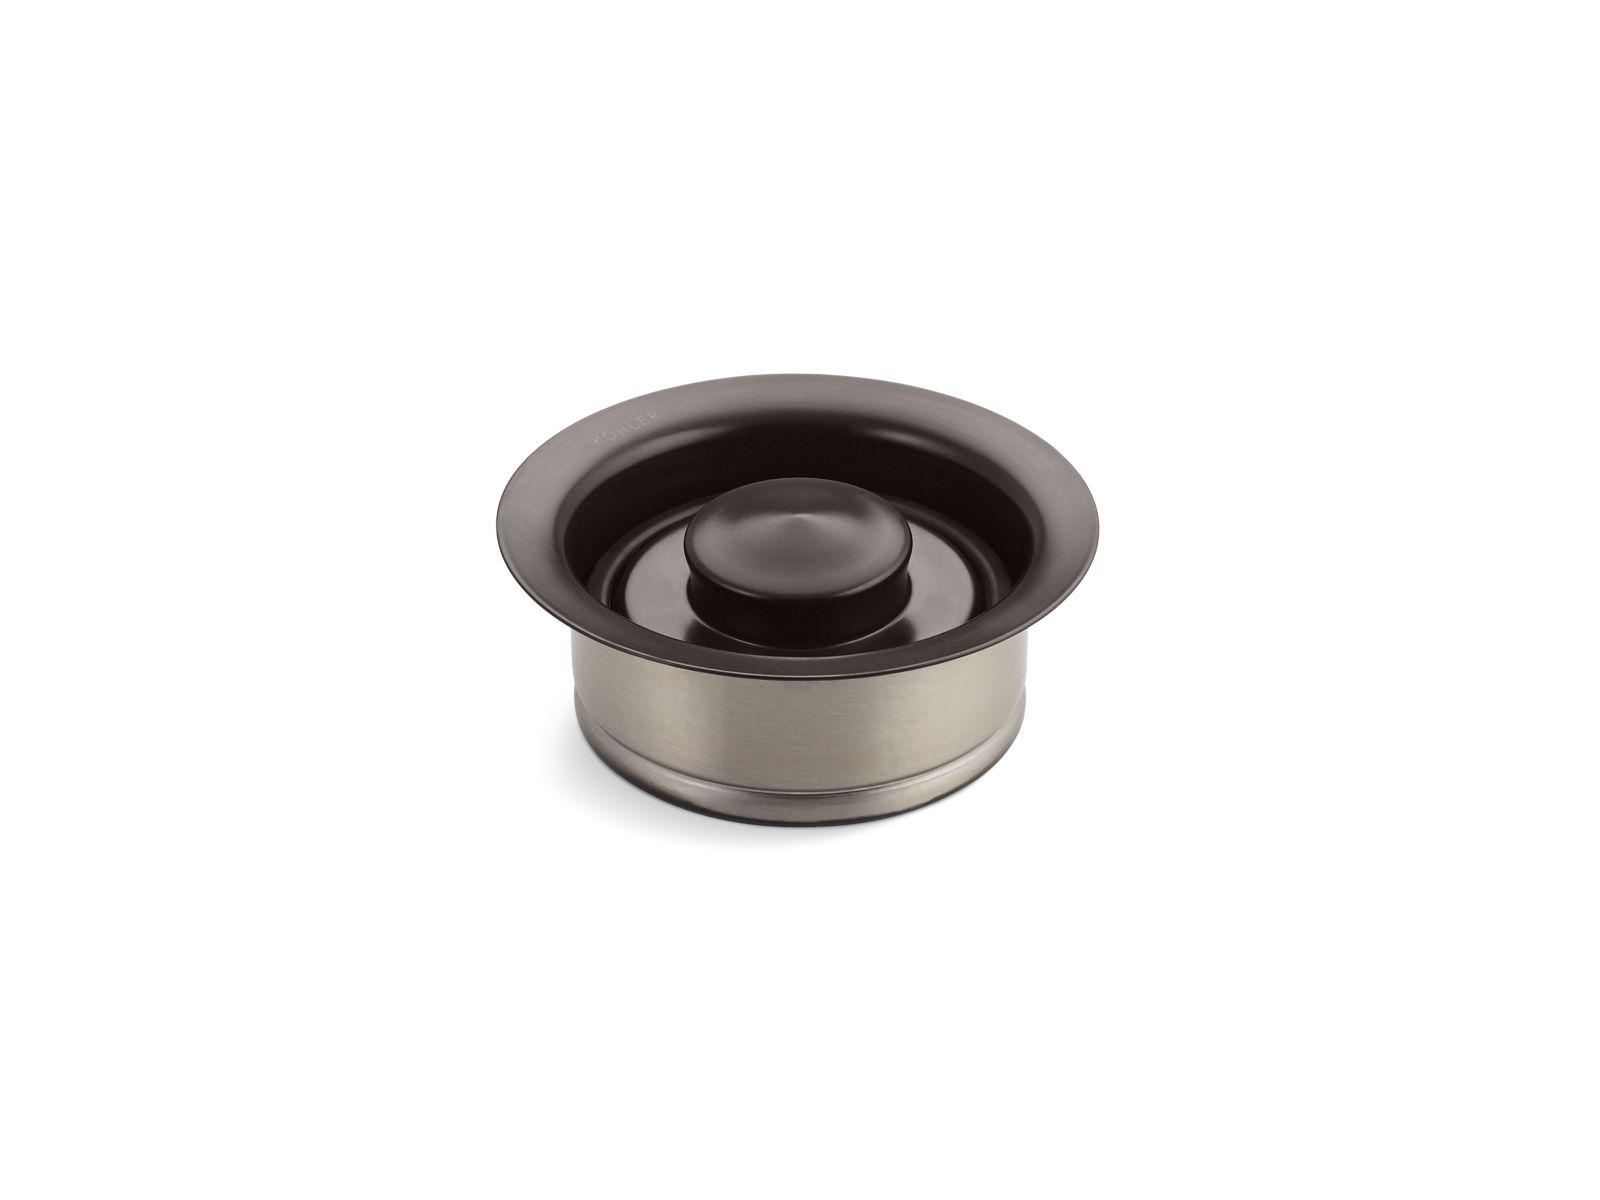 Kohler K-11352-2BZ Garbage Disposal Flange with Stopper Oil Rubbed Bronze